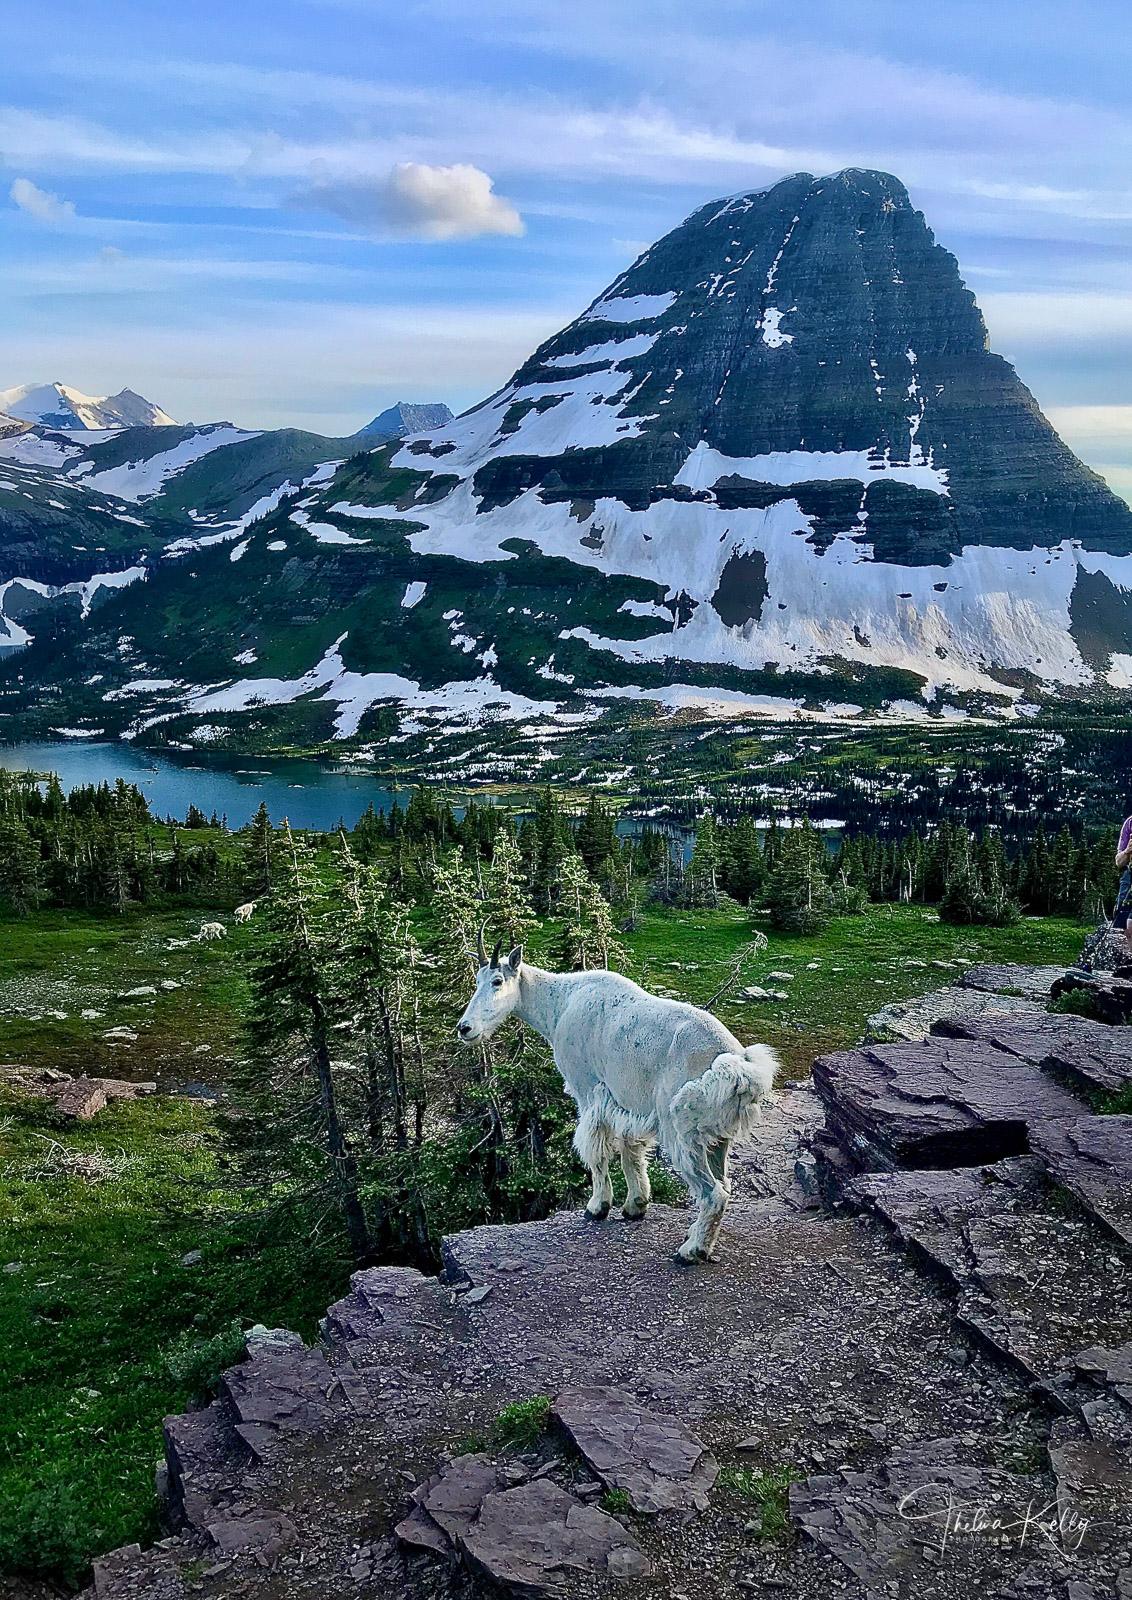 Mountain goat surveying his slice of heaven